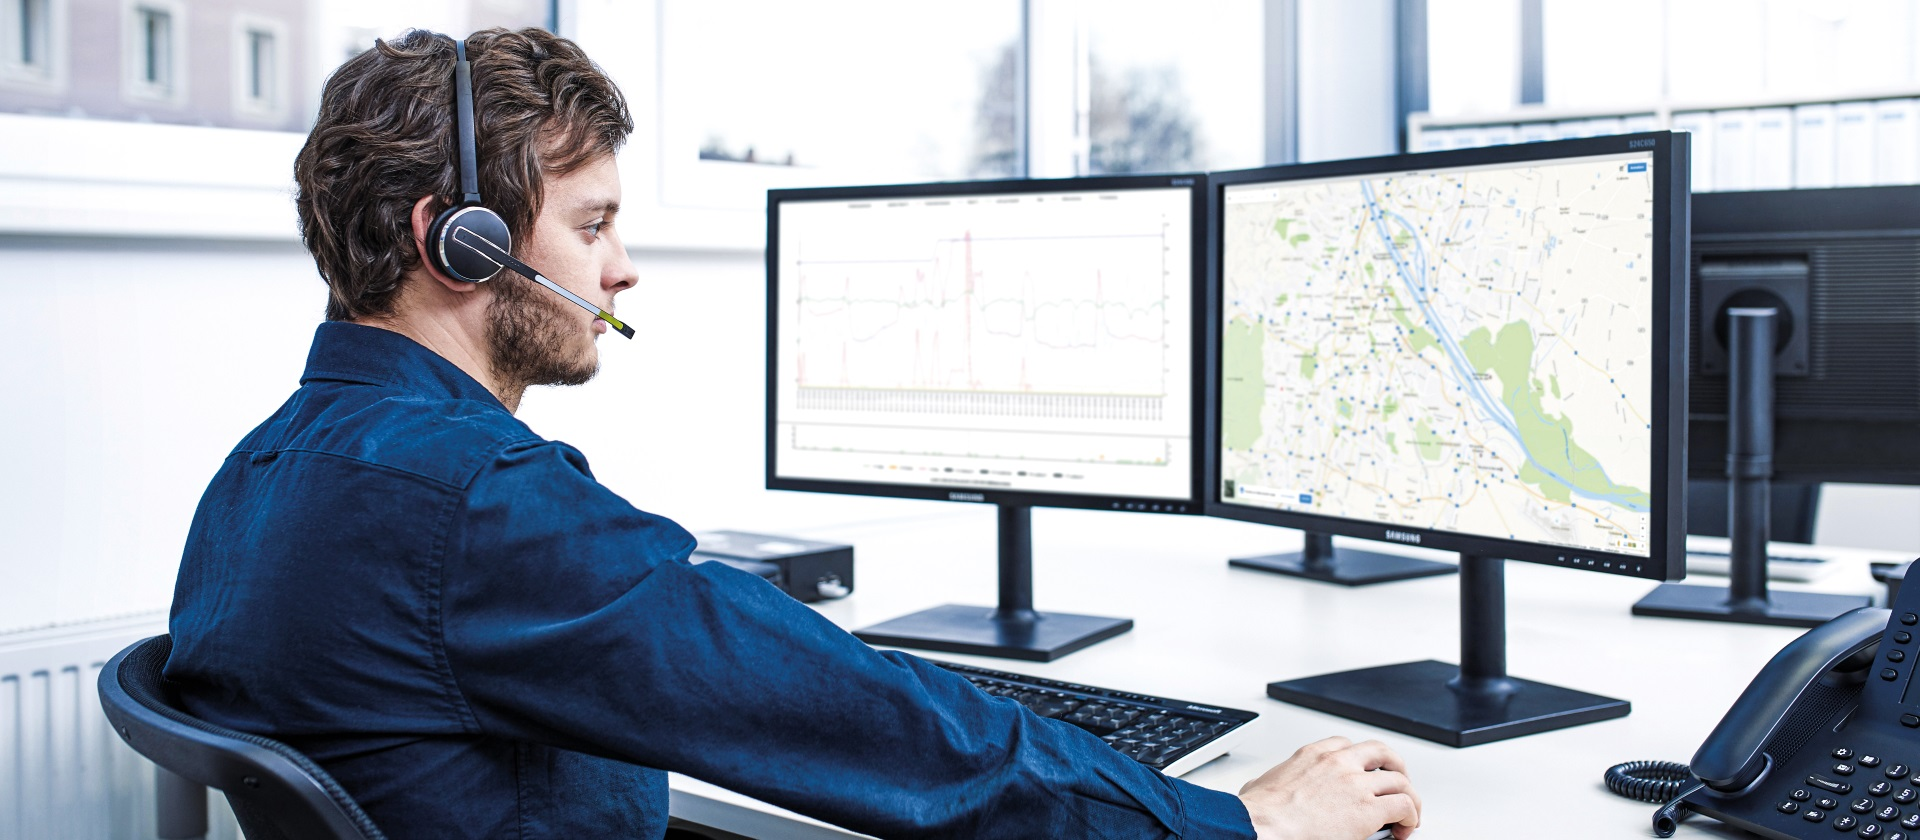 HAUSER realizes energy-saving potential through energy monitoring